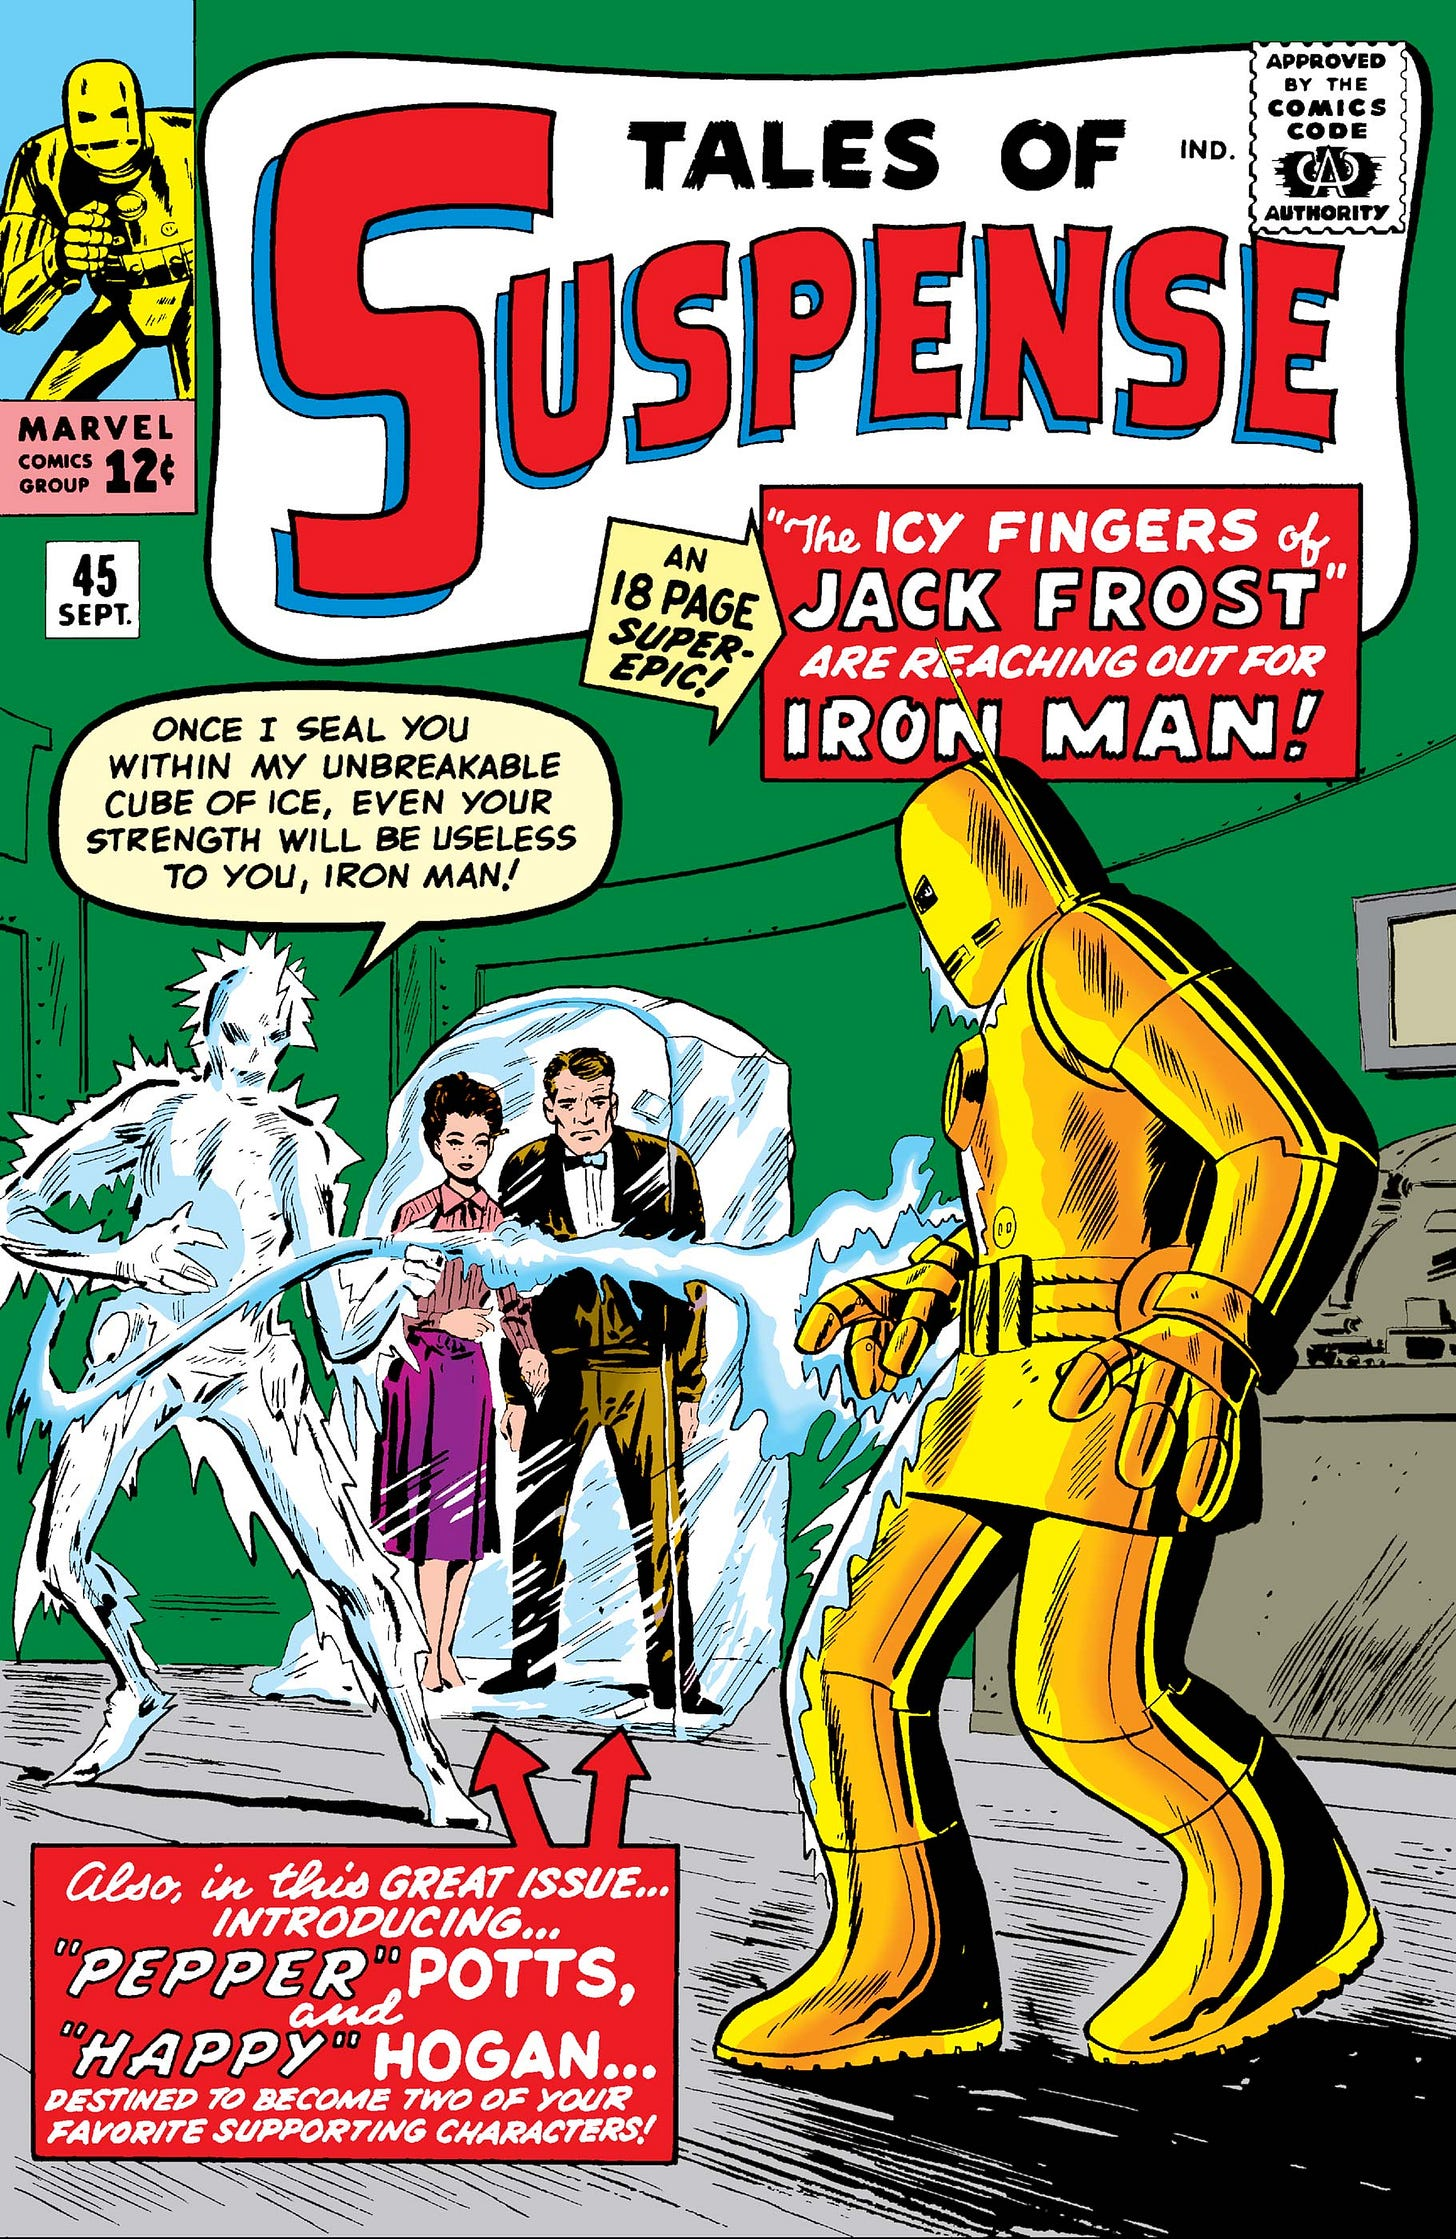 Tales of Suspense (1959) #45 | Comic Issues | Marvel